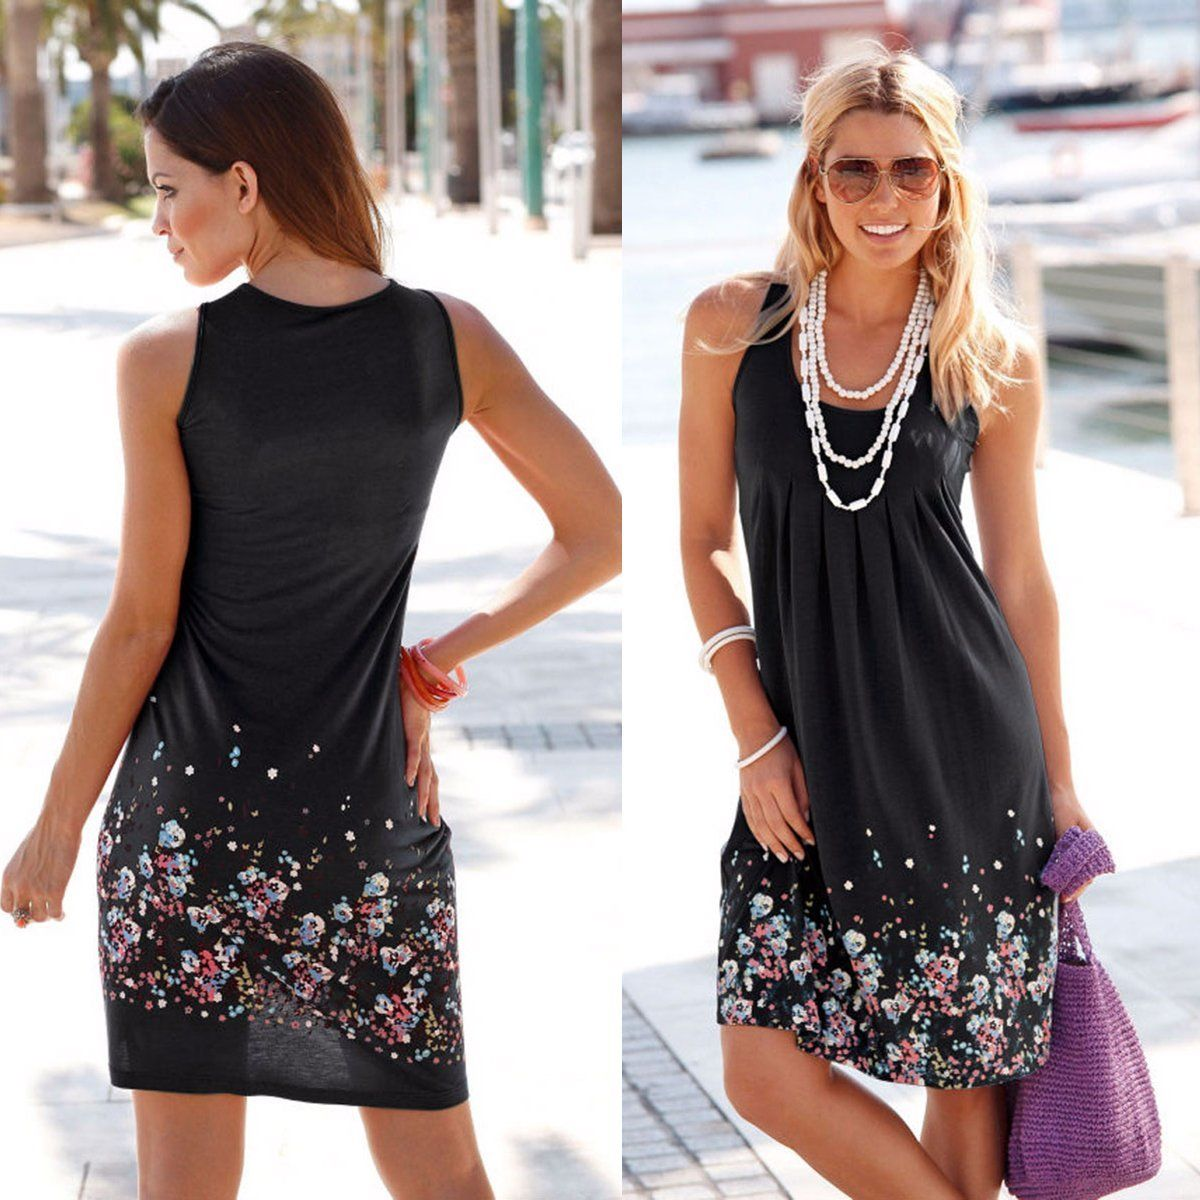 women dress 2016 summer dresses new brand plus size casual female clothing sleeveless party midi. Black Bedroom Furniture Sets. Home Design Ideas